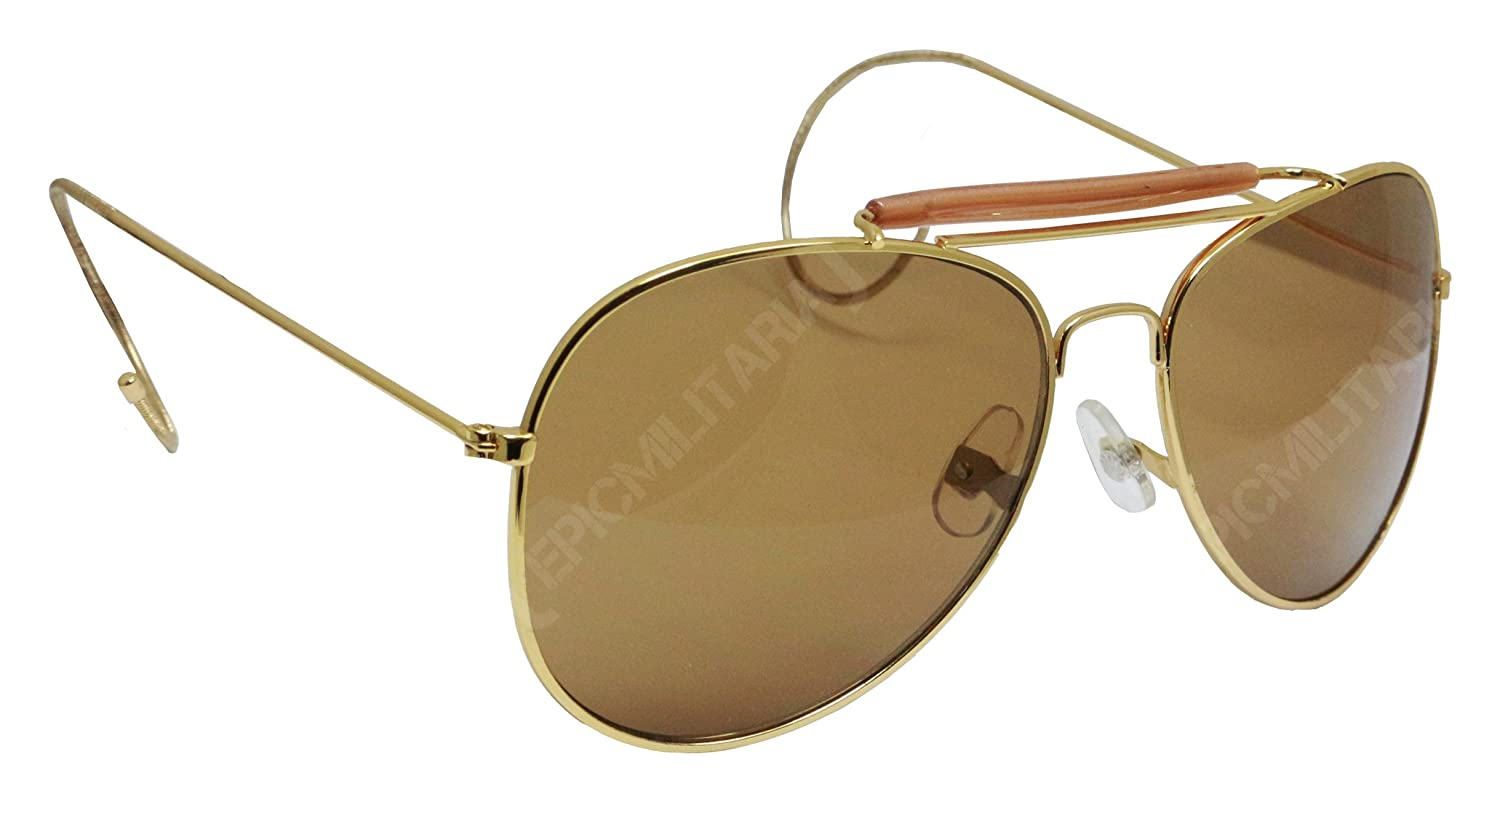 9fd1bb262 Amazon.com: US Pilot Style Aviator Sunglasses with Mirrored, Brown or Green  Lenses(Mirrored): Sports & Outdoors